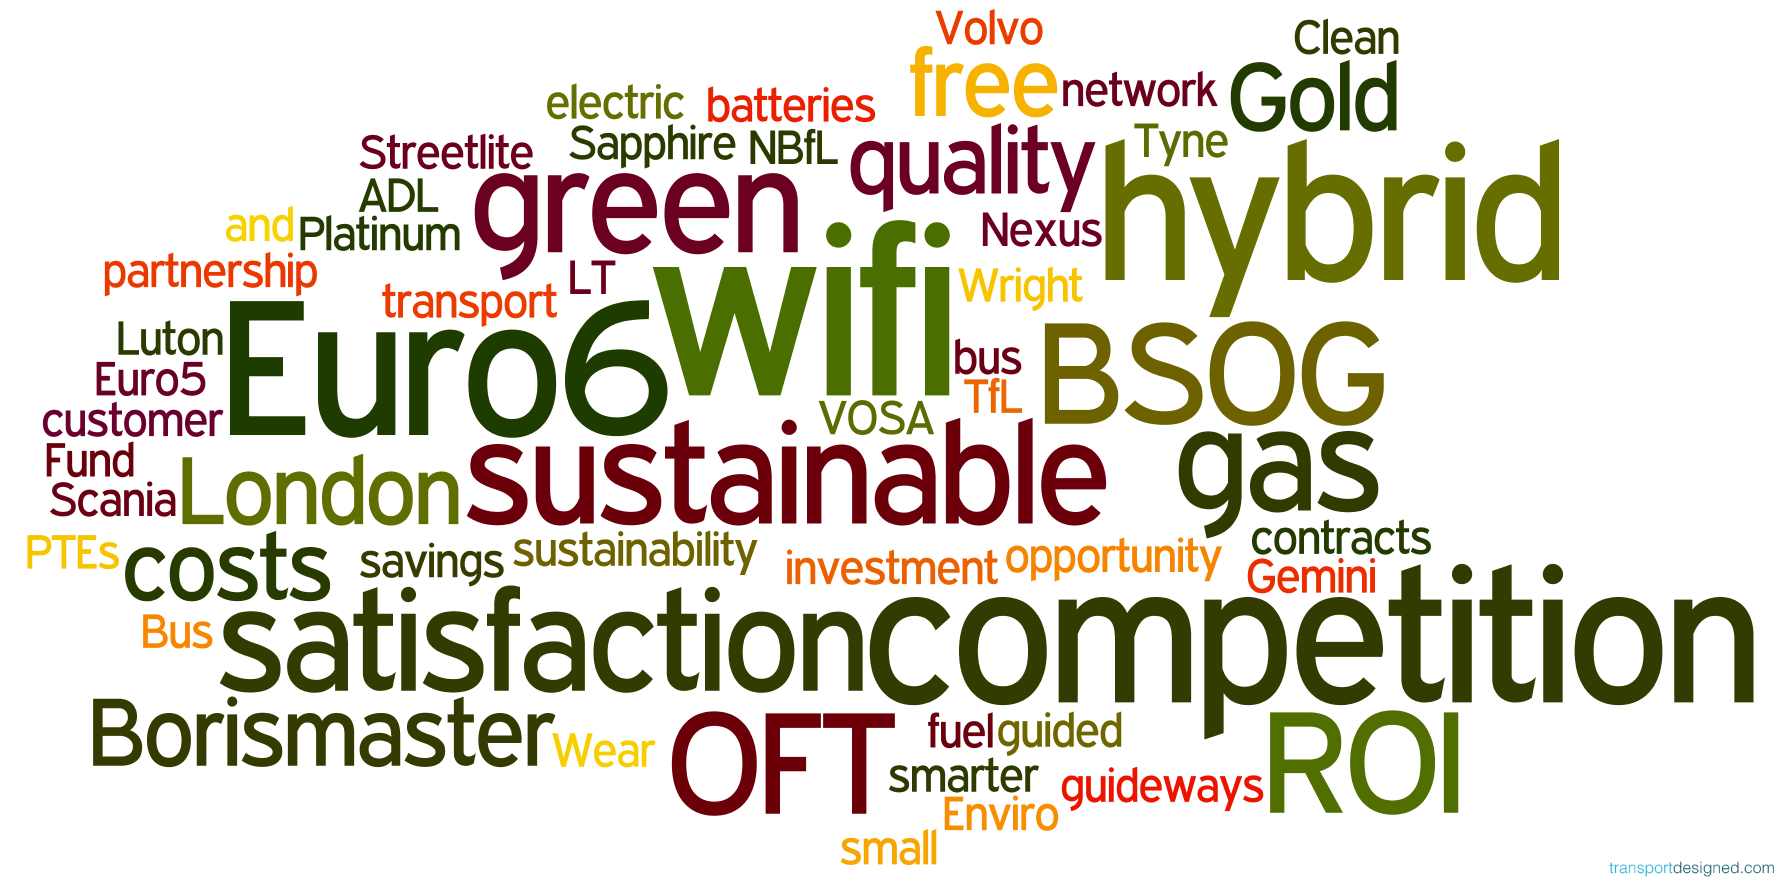 Transportdesigned's bus industry buzz words of 2013, word-cloud style. Version 5. It's a free download, and you're free to use as you wish, although we always appreciate some attribution!